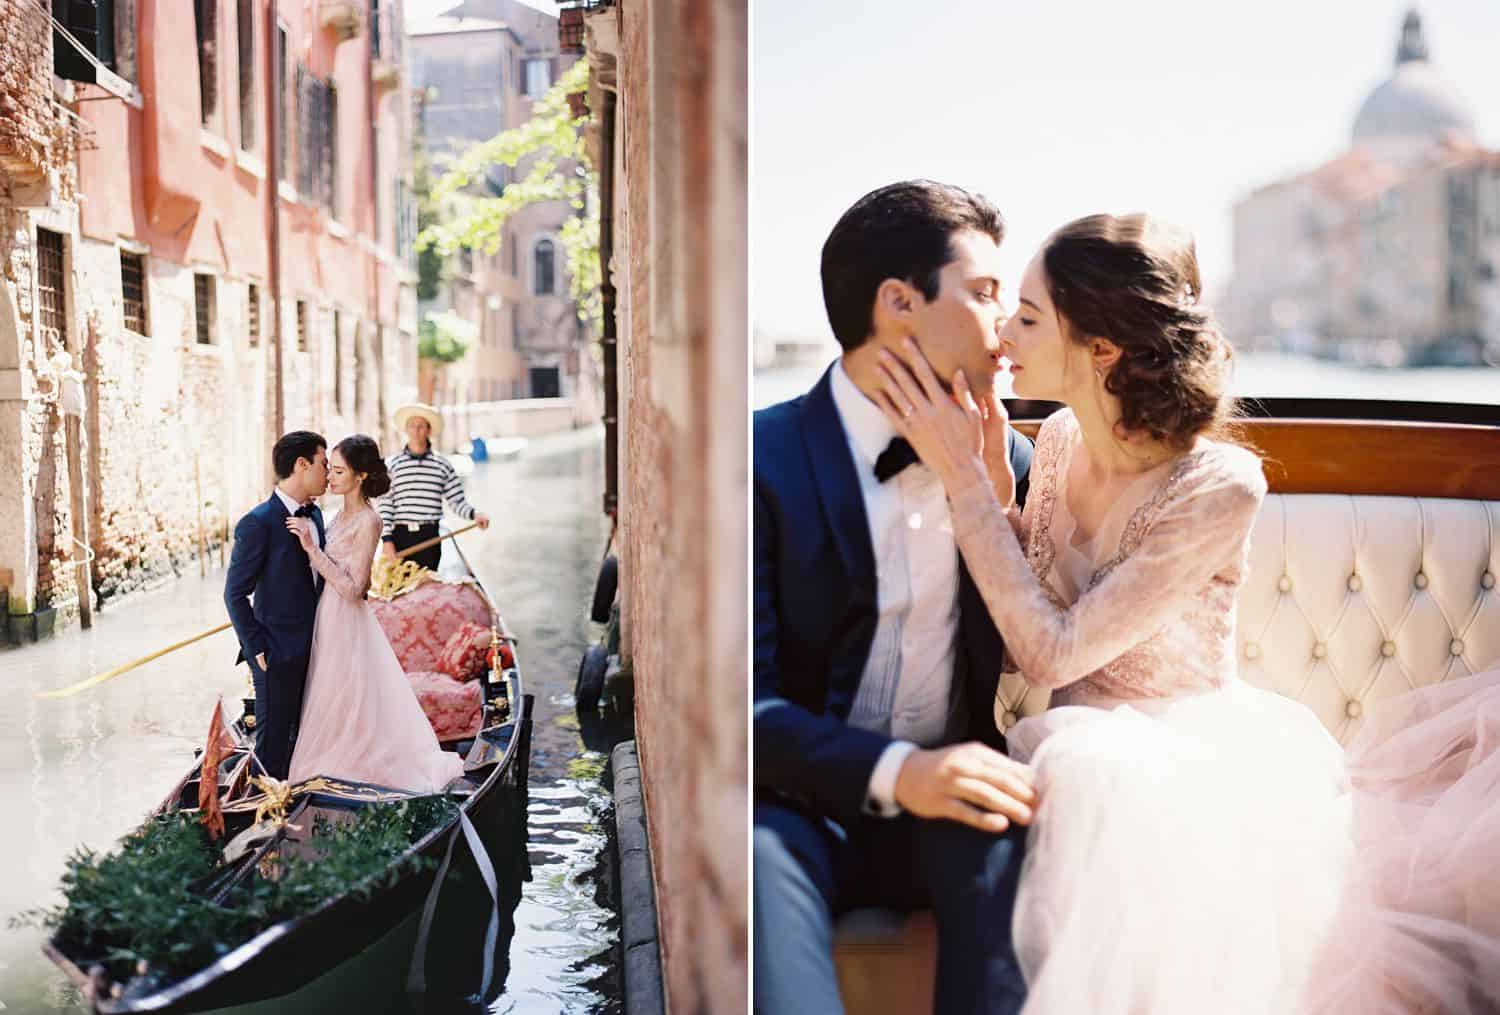 A bride and groom ride in a gondola through the canals of Venice, Italy.